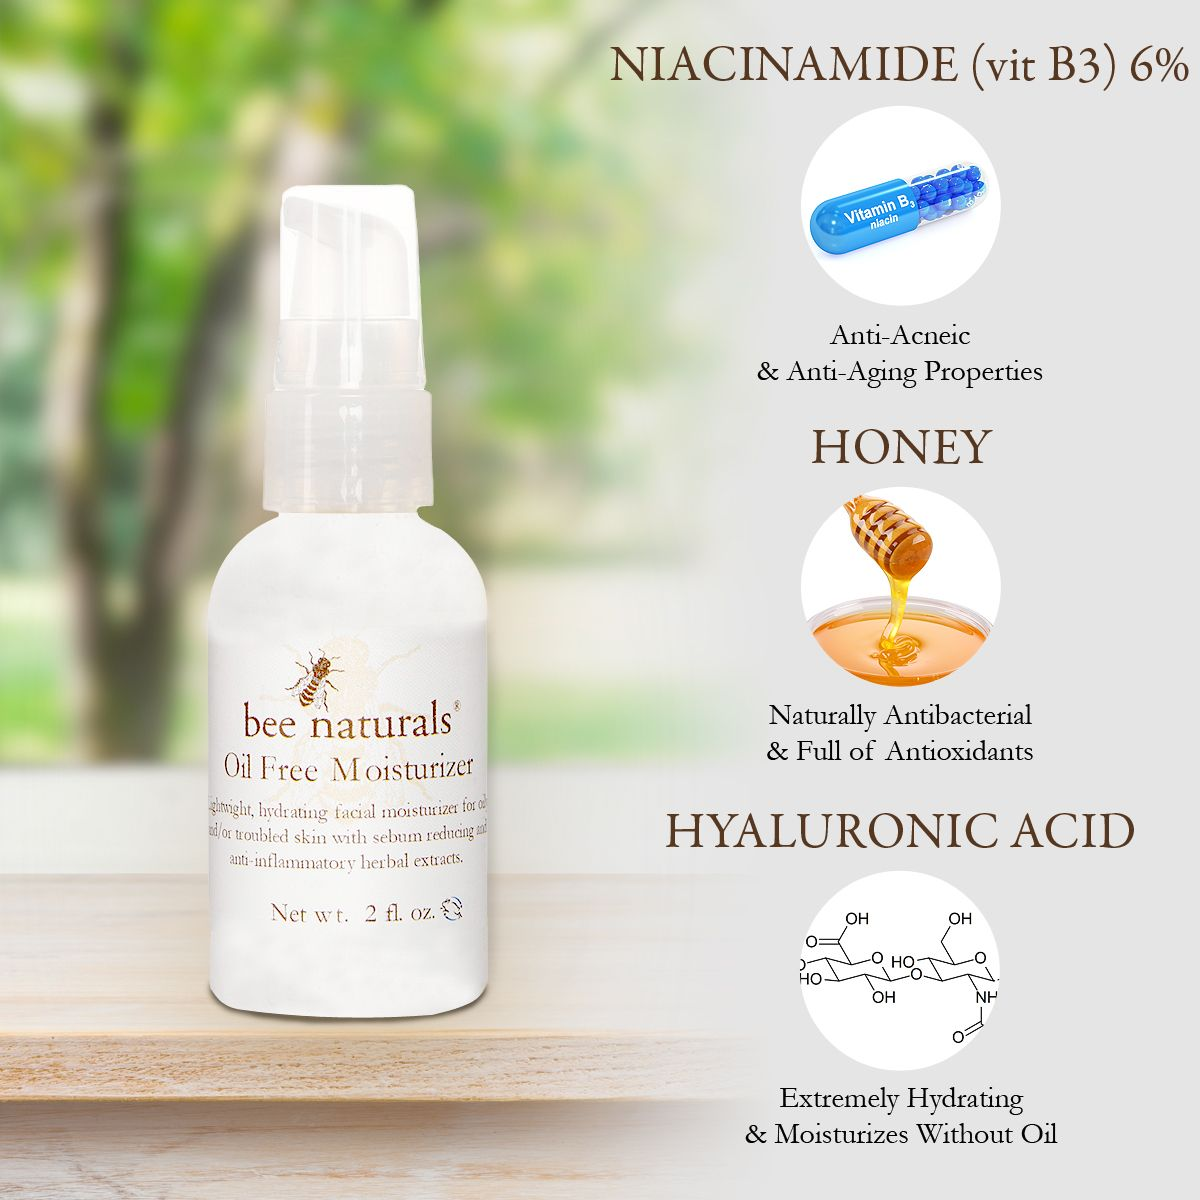 Oil Free Moisturizer I OilFree, Hydrating, Soothing